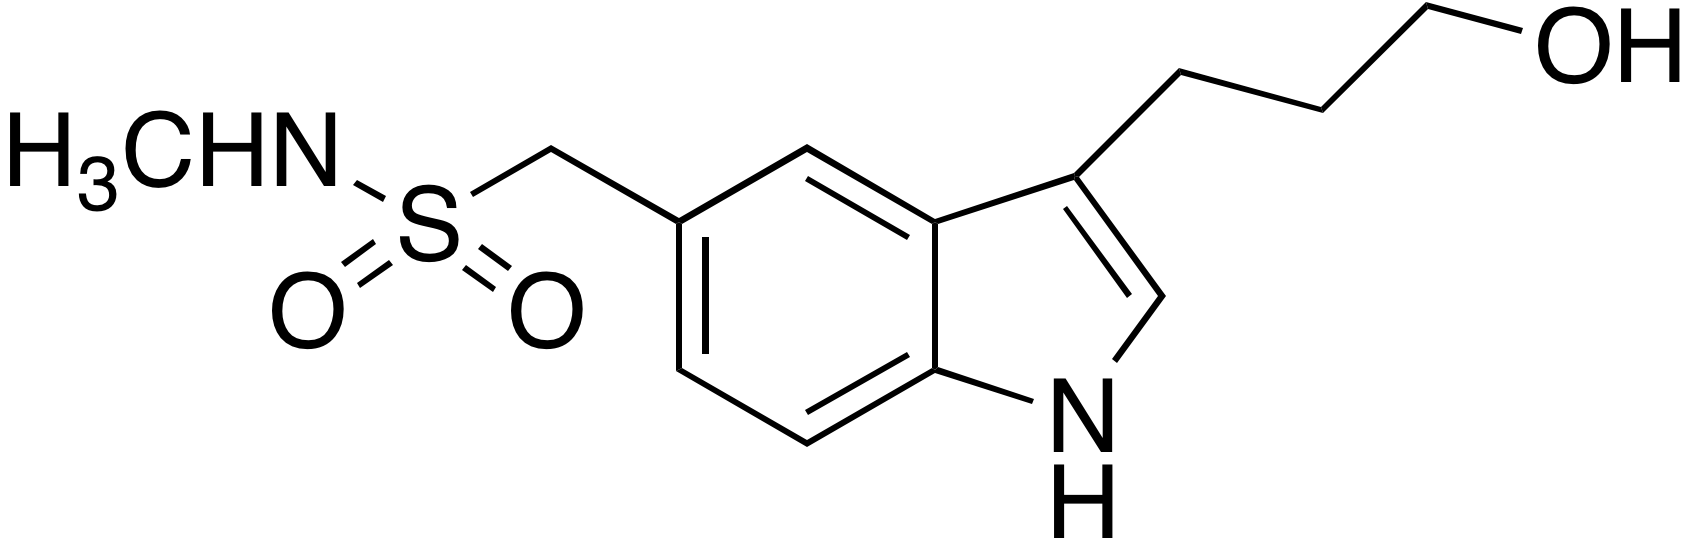 1-(3-(3-Hydroxypropyl)-5-indolyl)-N-methylmethanesulfonamide